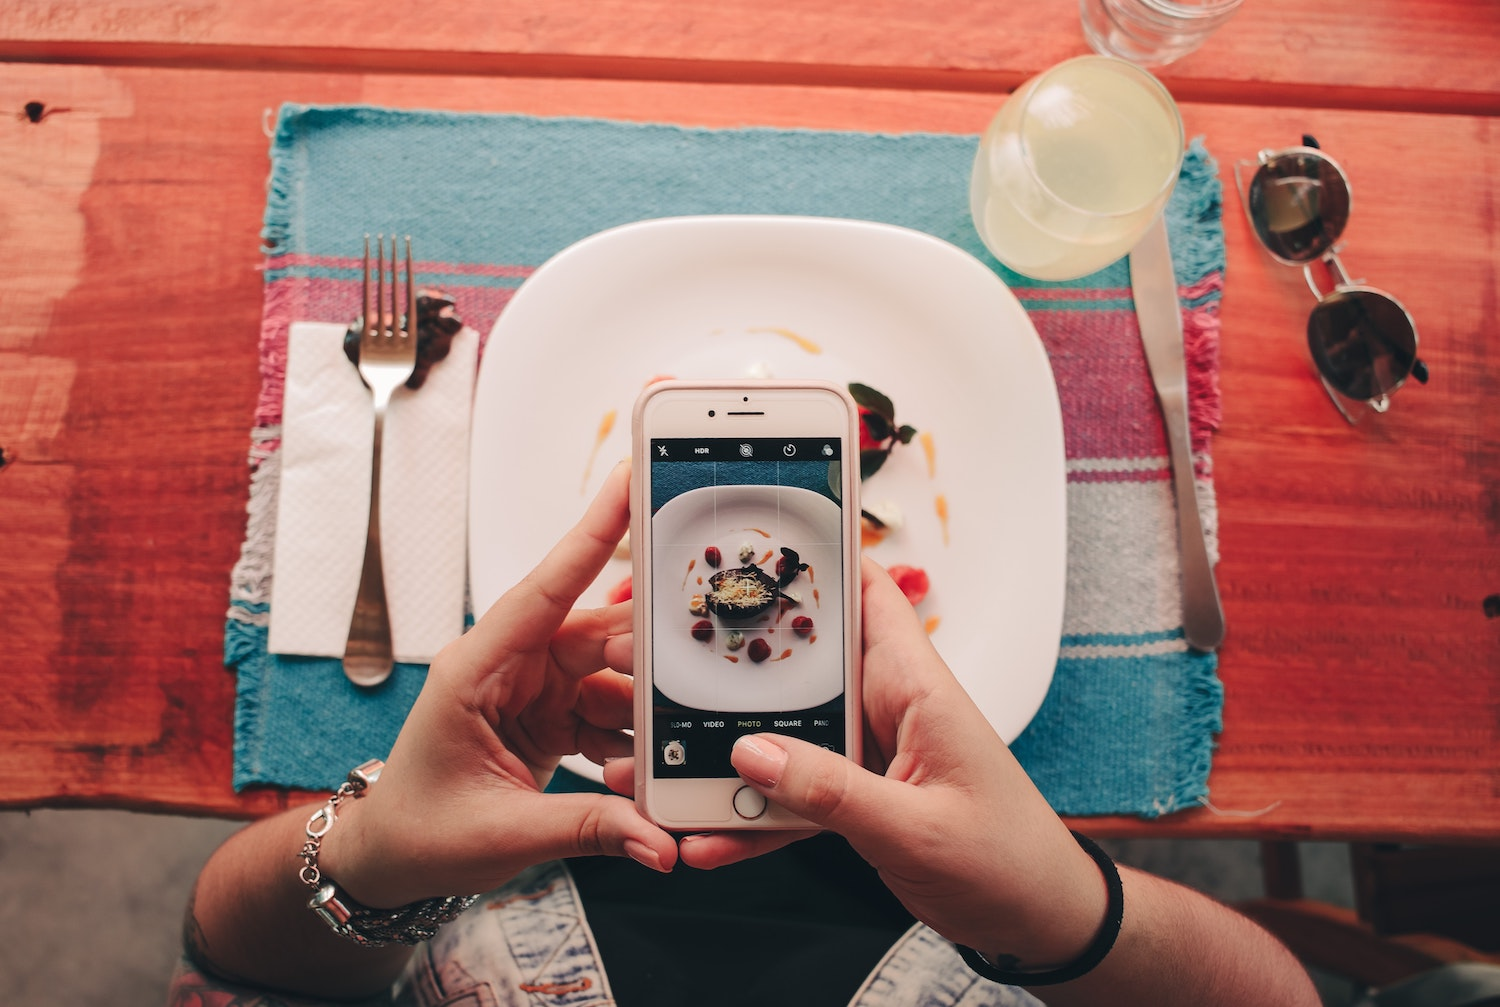 A photo of someone taking a photo of their food with their phone.